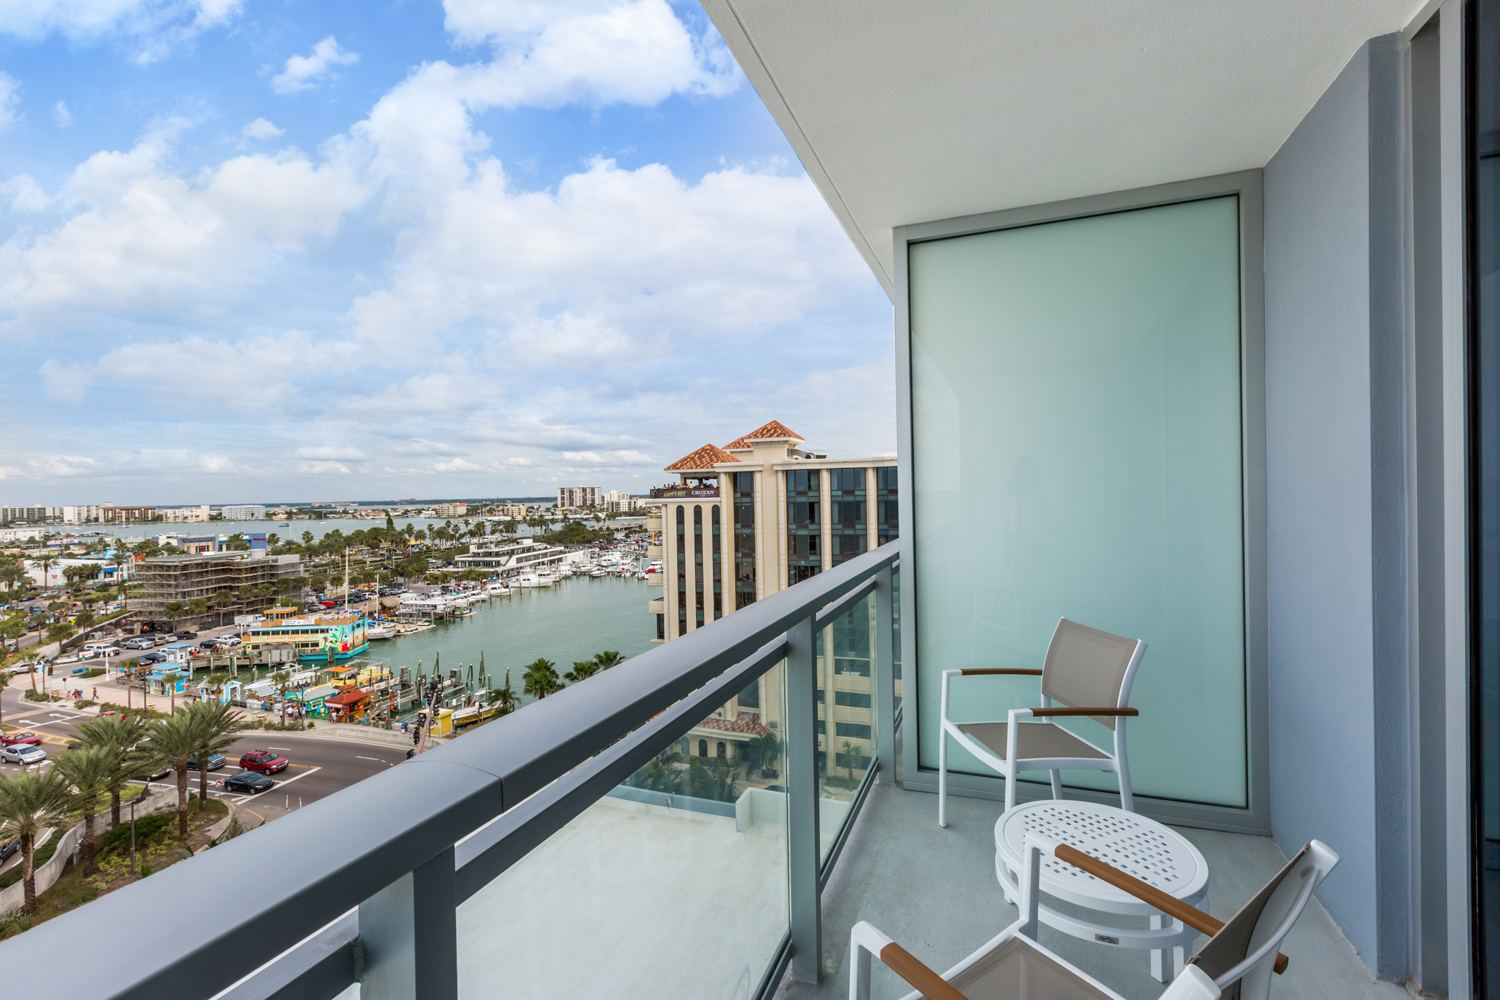 Wyndham Grand Clearwater Beach Makes Its Coastal Debut